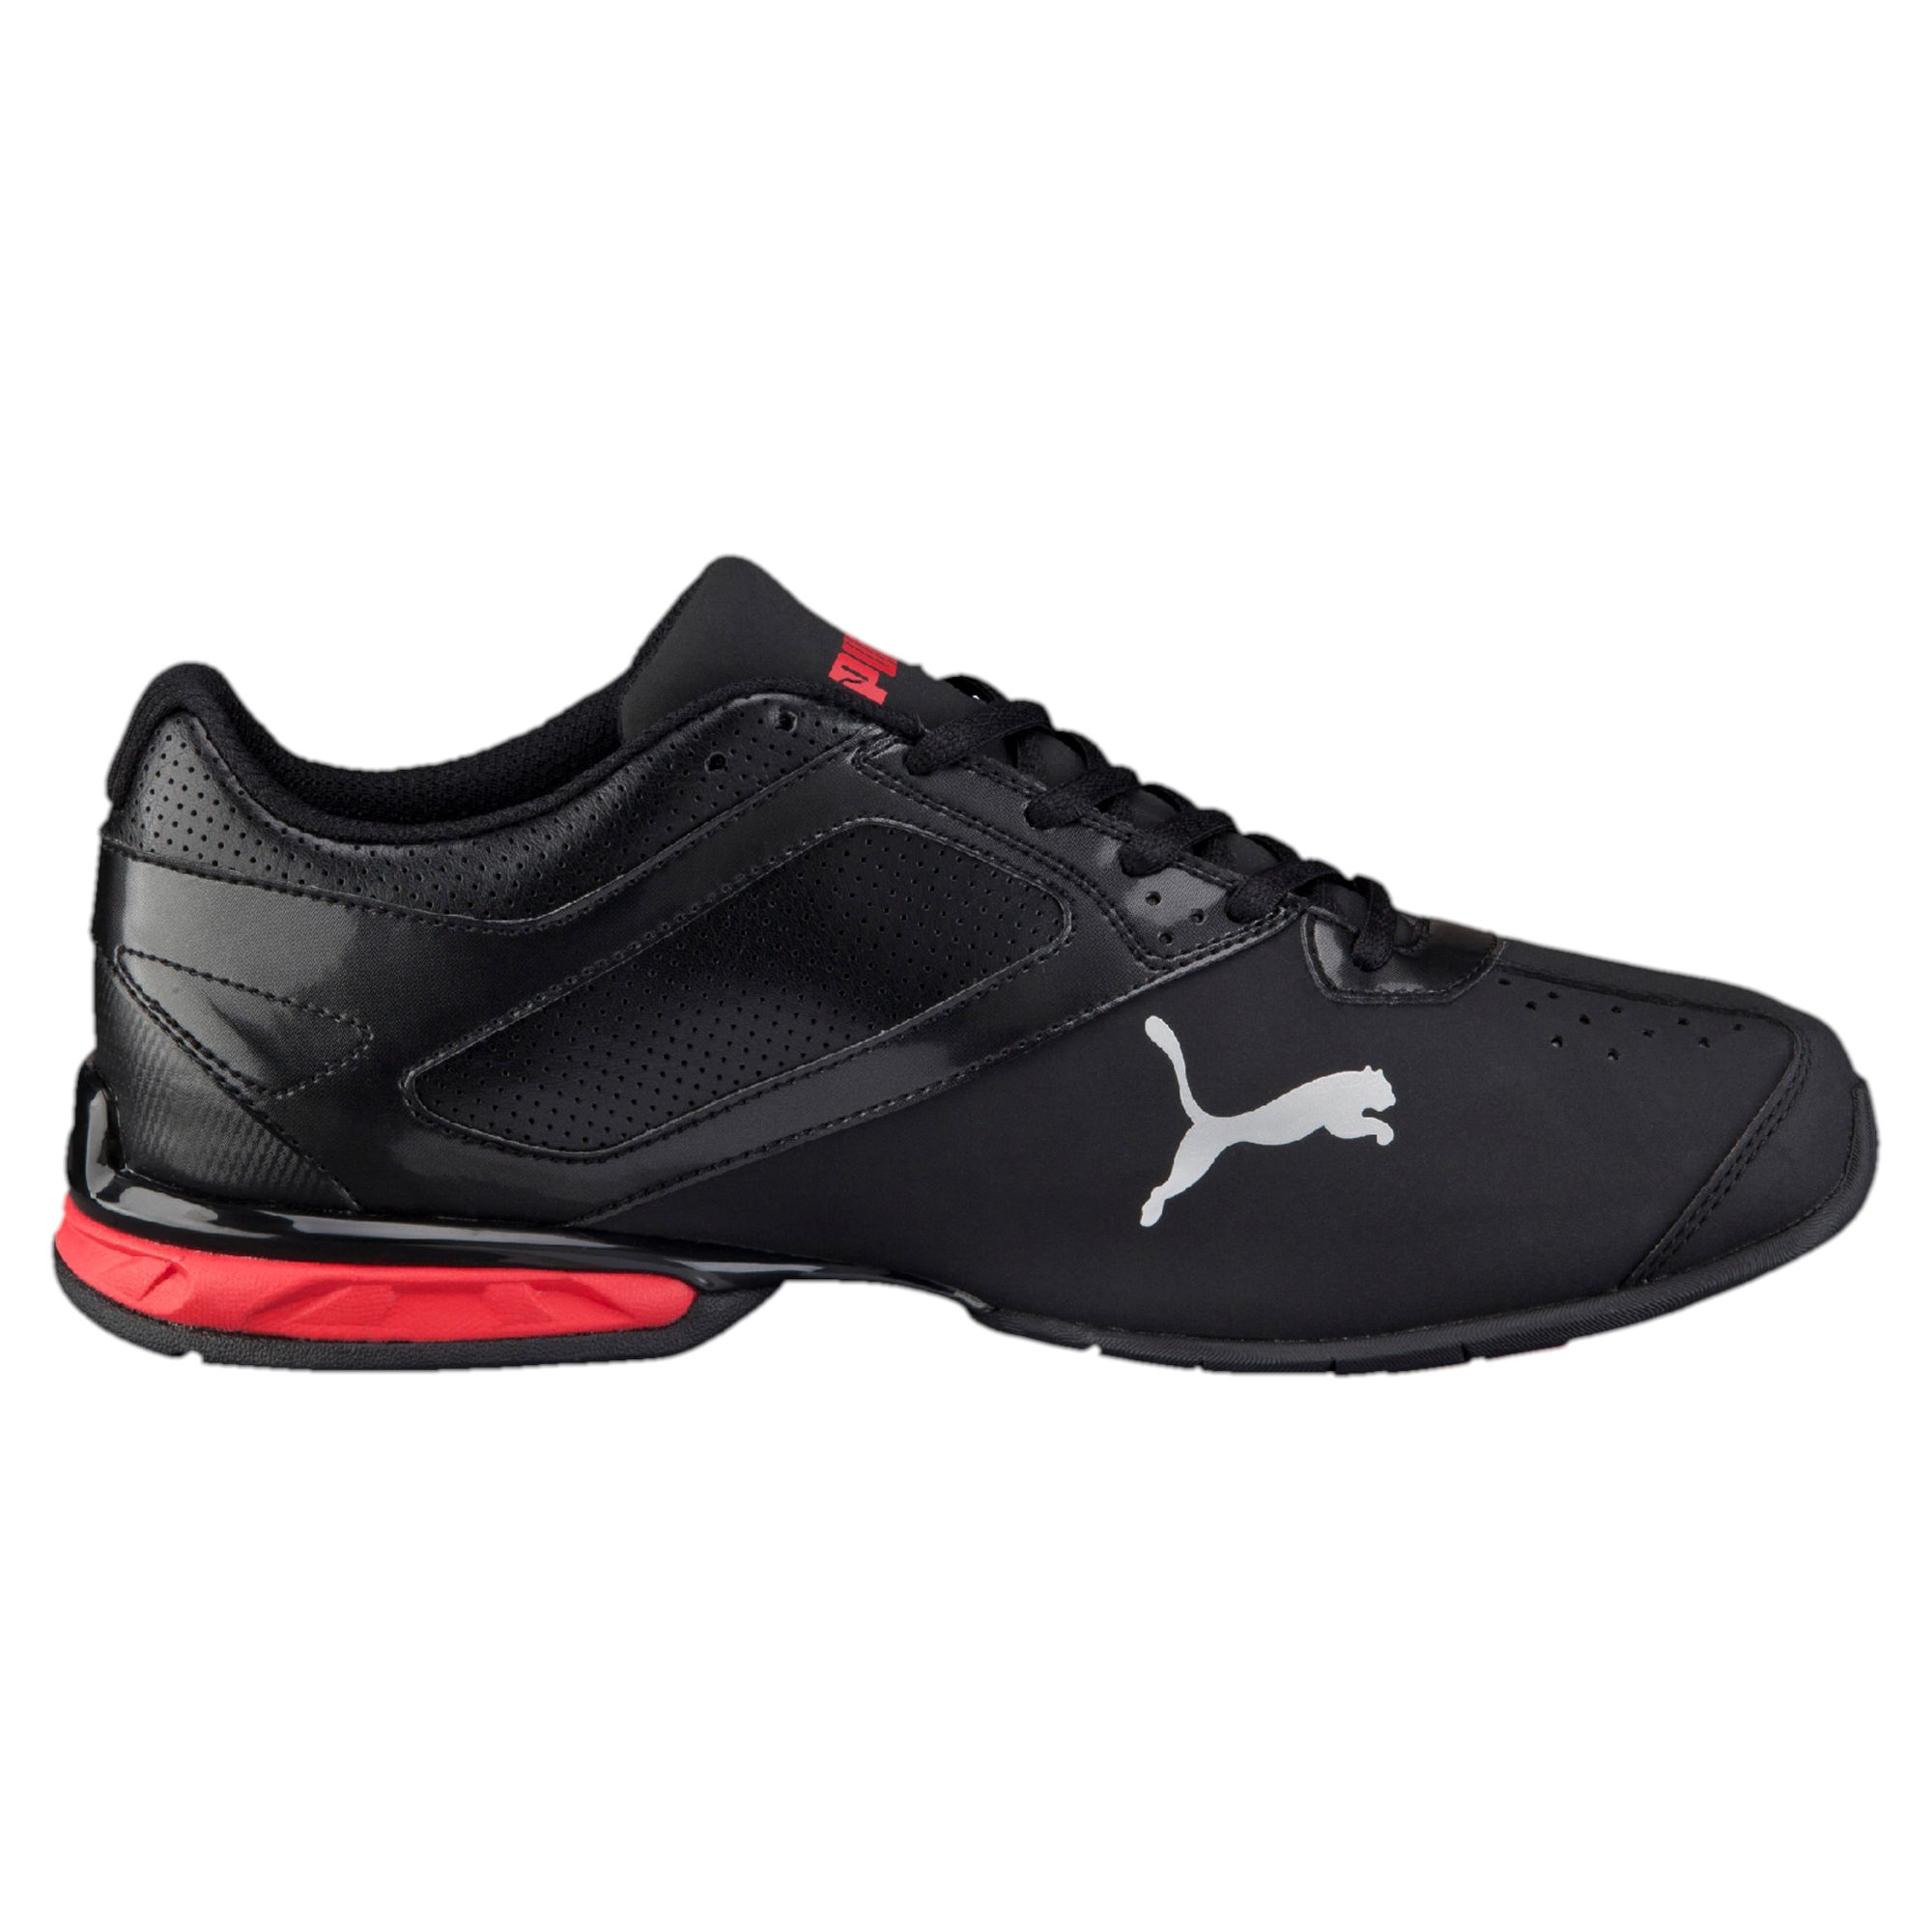 Puma Tazon 6 Men' Running Shoes